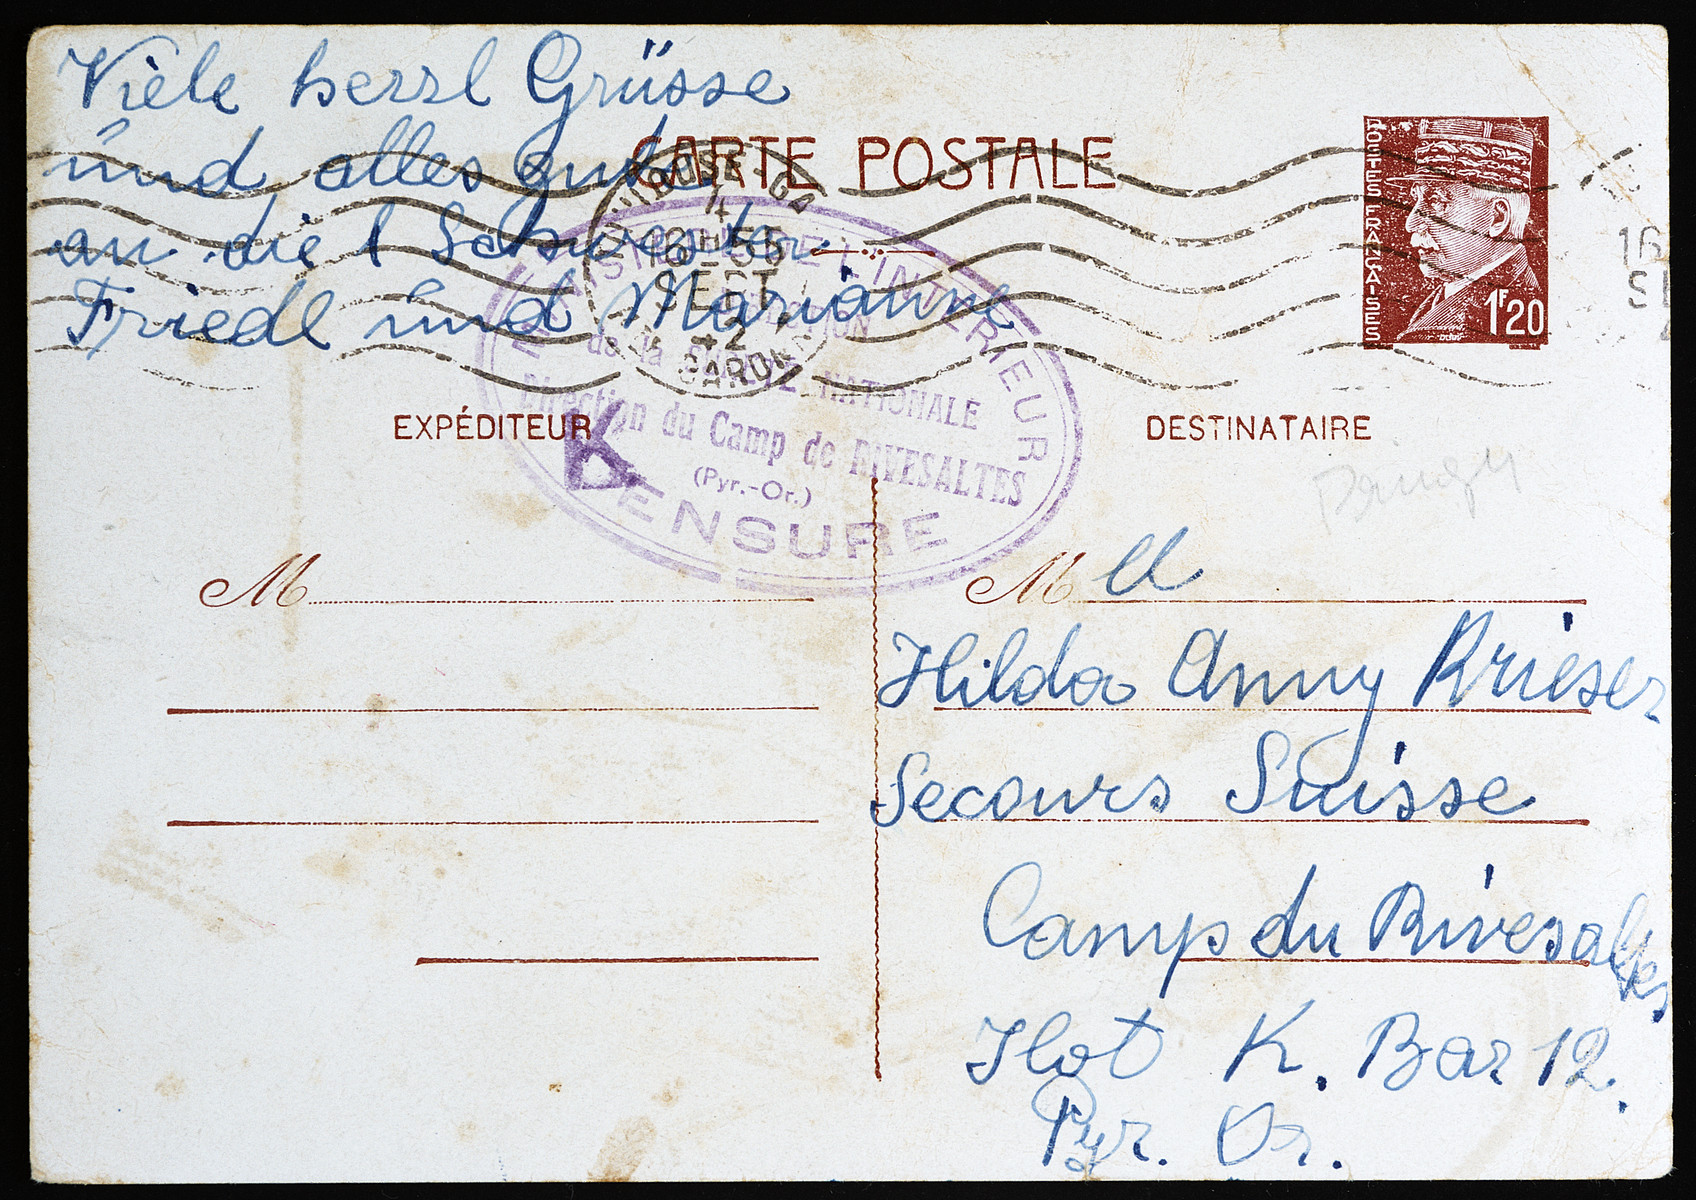 """Postcard send from Perla Krieser from a deportation train to her two daughters in the Rivesaltes concentration camp.  This is her final communication with her family before she was killed in Auschwitz.  The text of the postcard reads:  """"My dearest loved ones,  Now we have just gone directly over Toulouse.  It is 12 o'clock noon; unfortunately, we have no food to eat.  You all can imagine what I am thinking.  I am happy and satisfied that my loved ones are not here.  I am curious when you will leave.  In God's name, be brave and calm and [thanking] your loving sister Friedl's heart.    Yours, Mama  Many best wishes and hope everything is good from yours loving sisters Freidl and Marianne."""""""